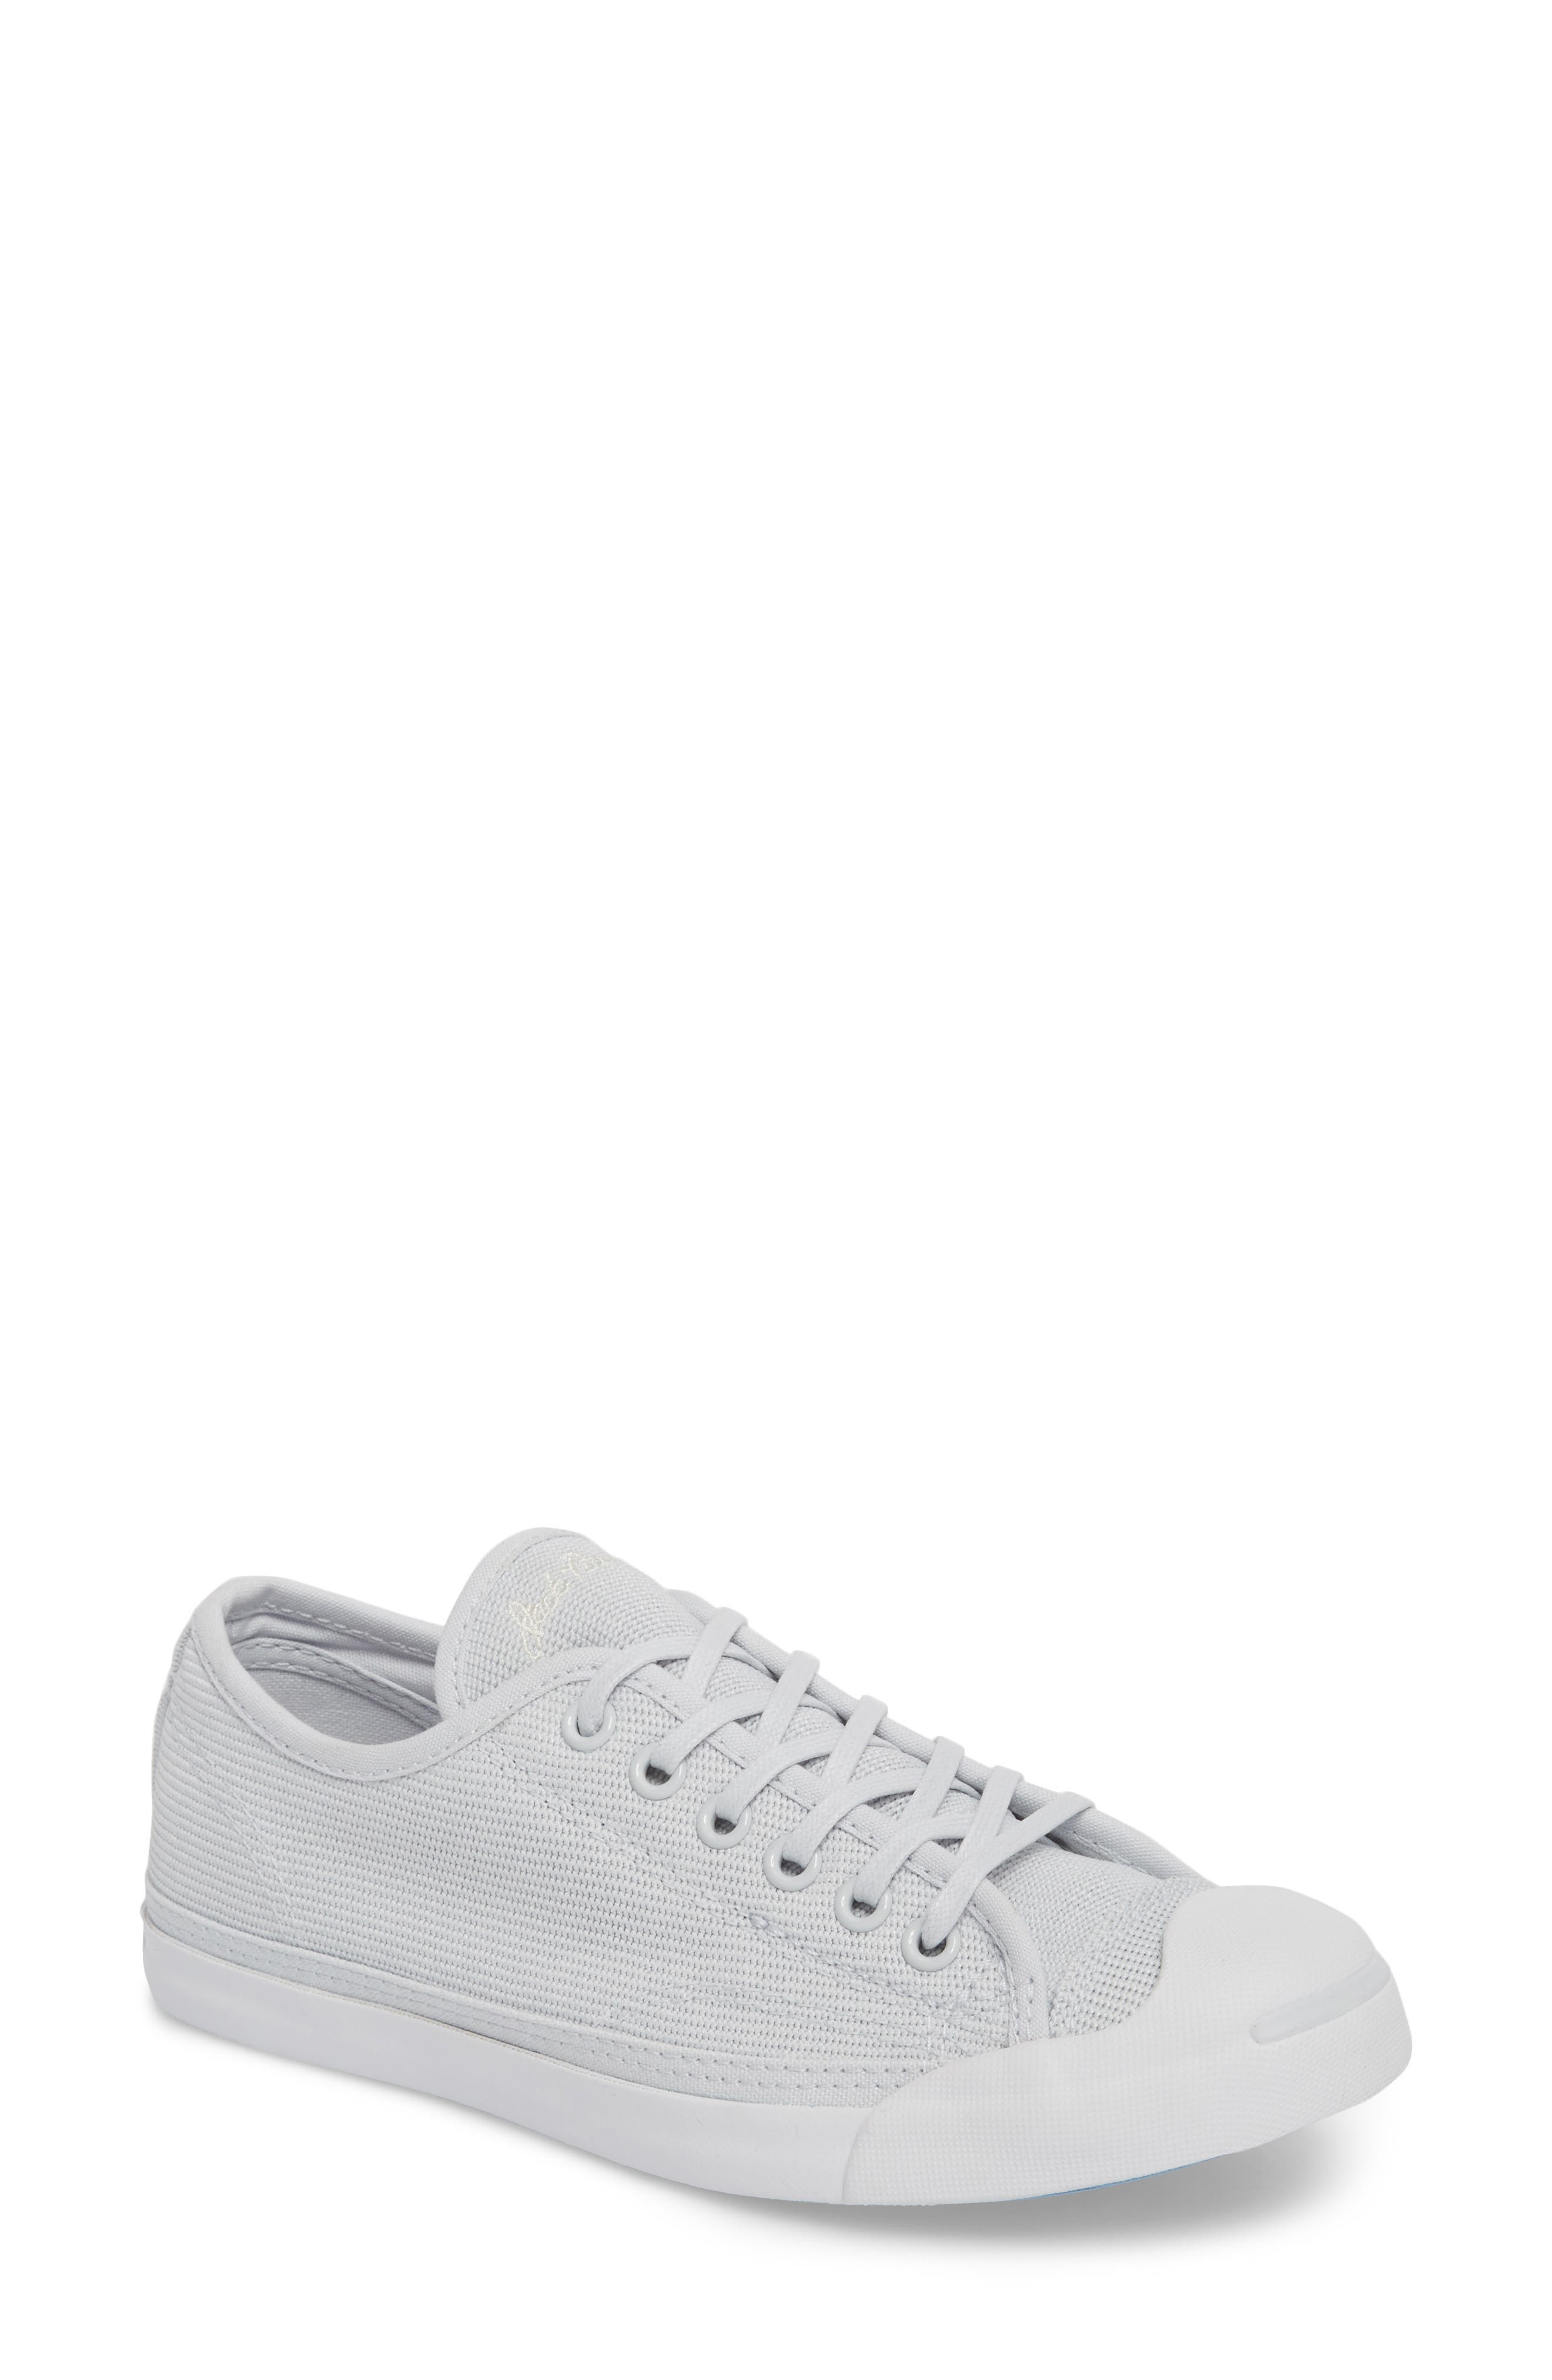 Jack Purcell Low Top Sneaker,                         Main,                         color, PURE PLATINUM